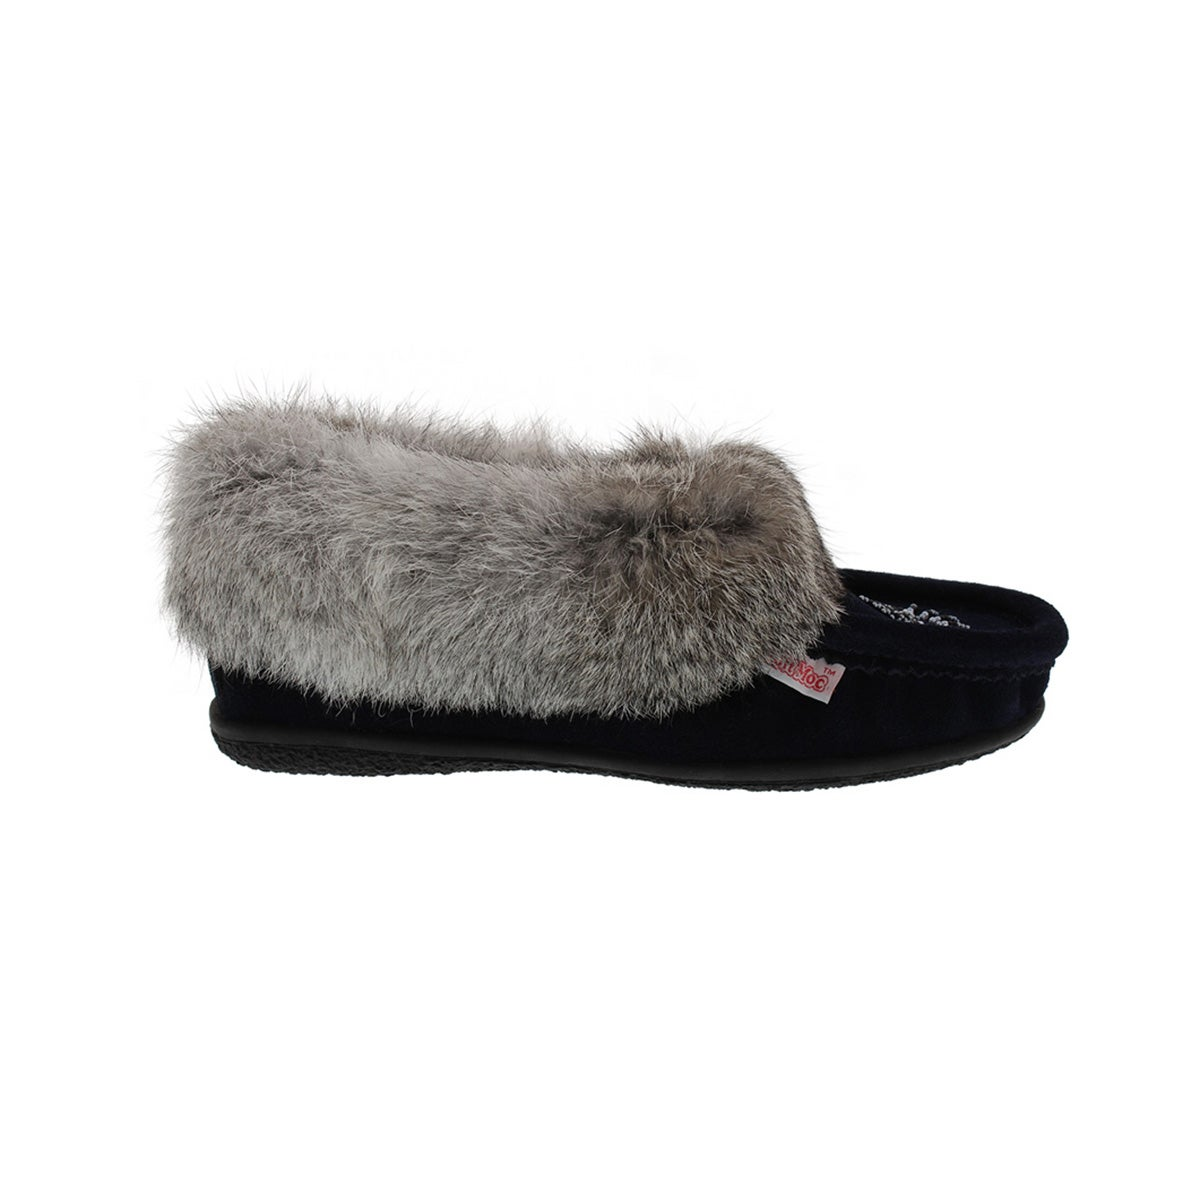 Lds Cute 3 navy rabbit fur moccasin